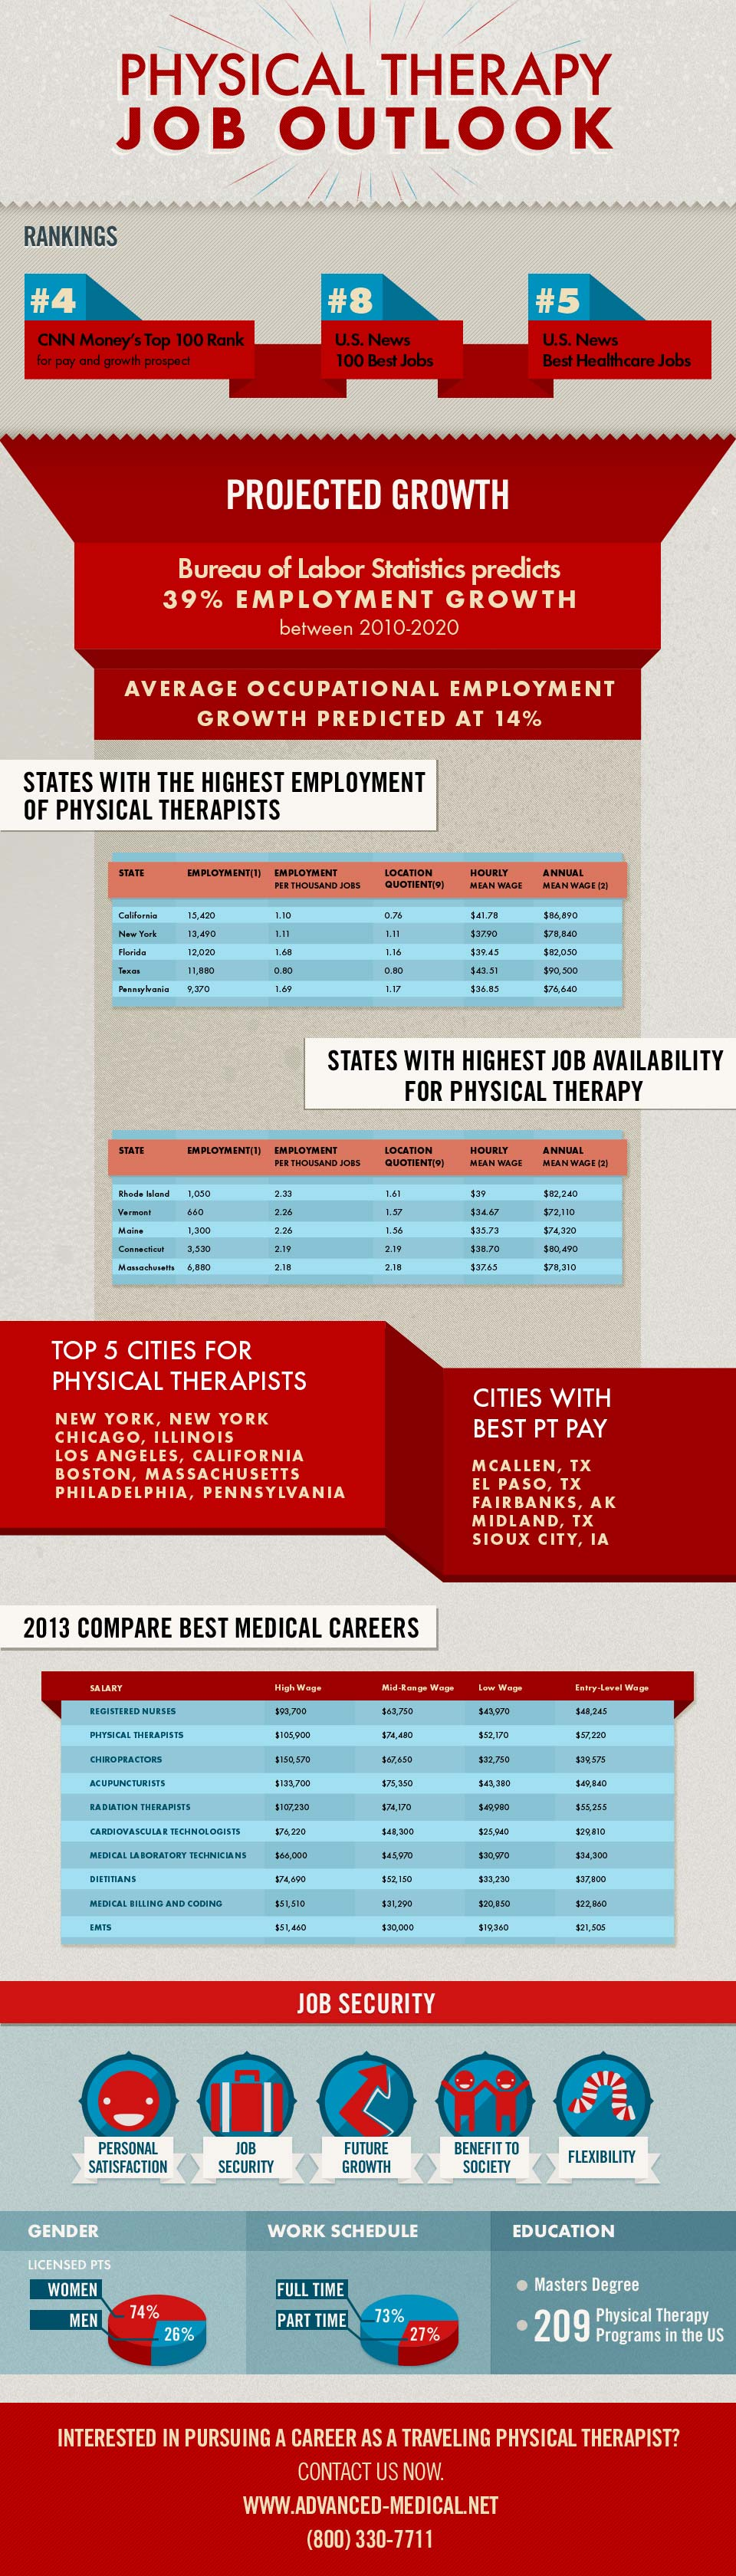 Physical Therapy Job Outlook [infographic] Physical